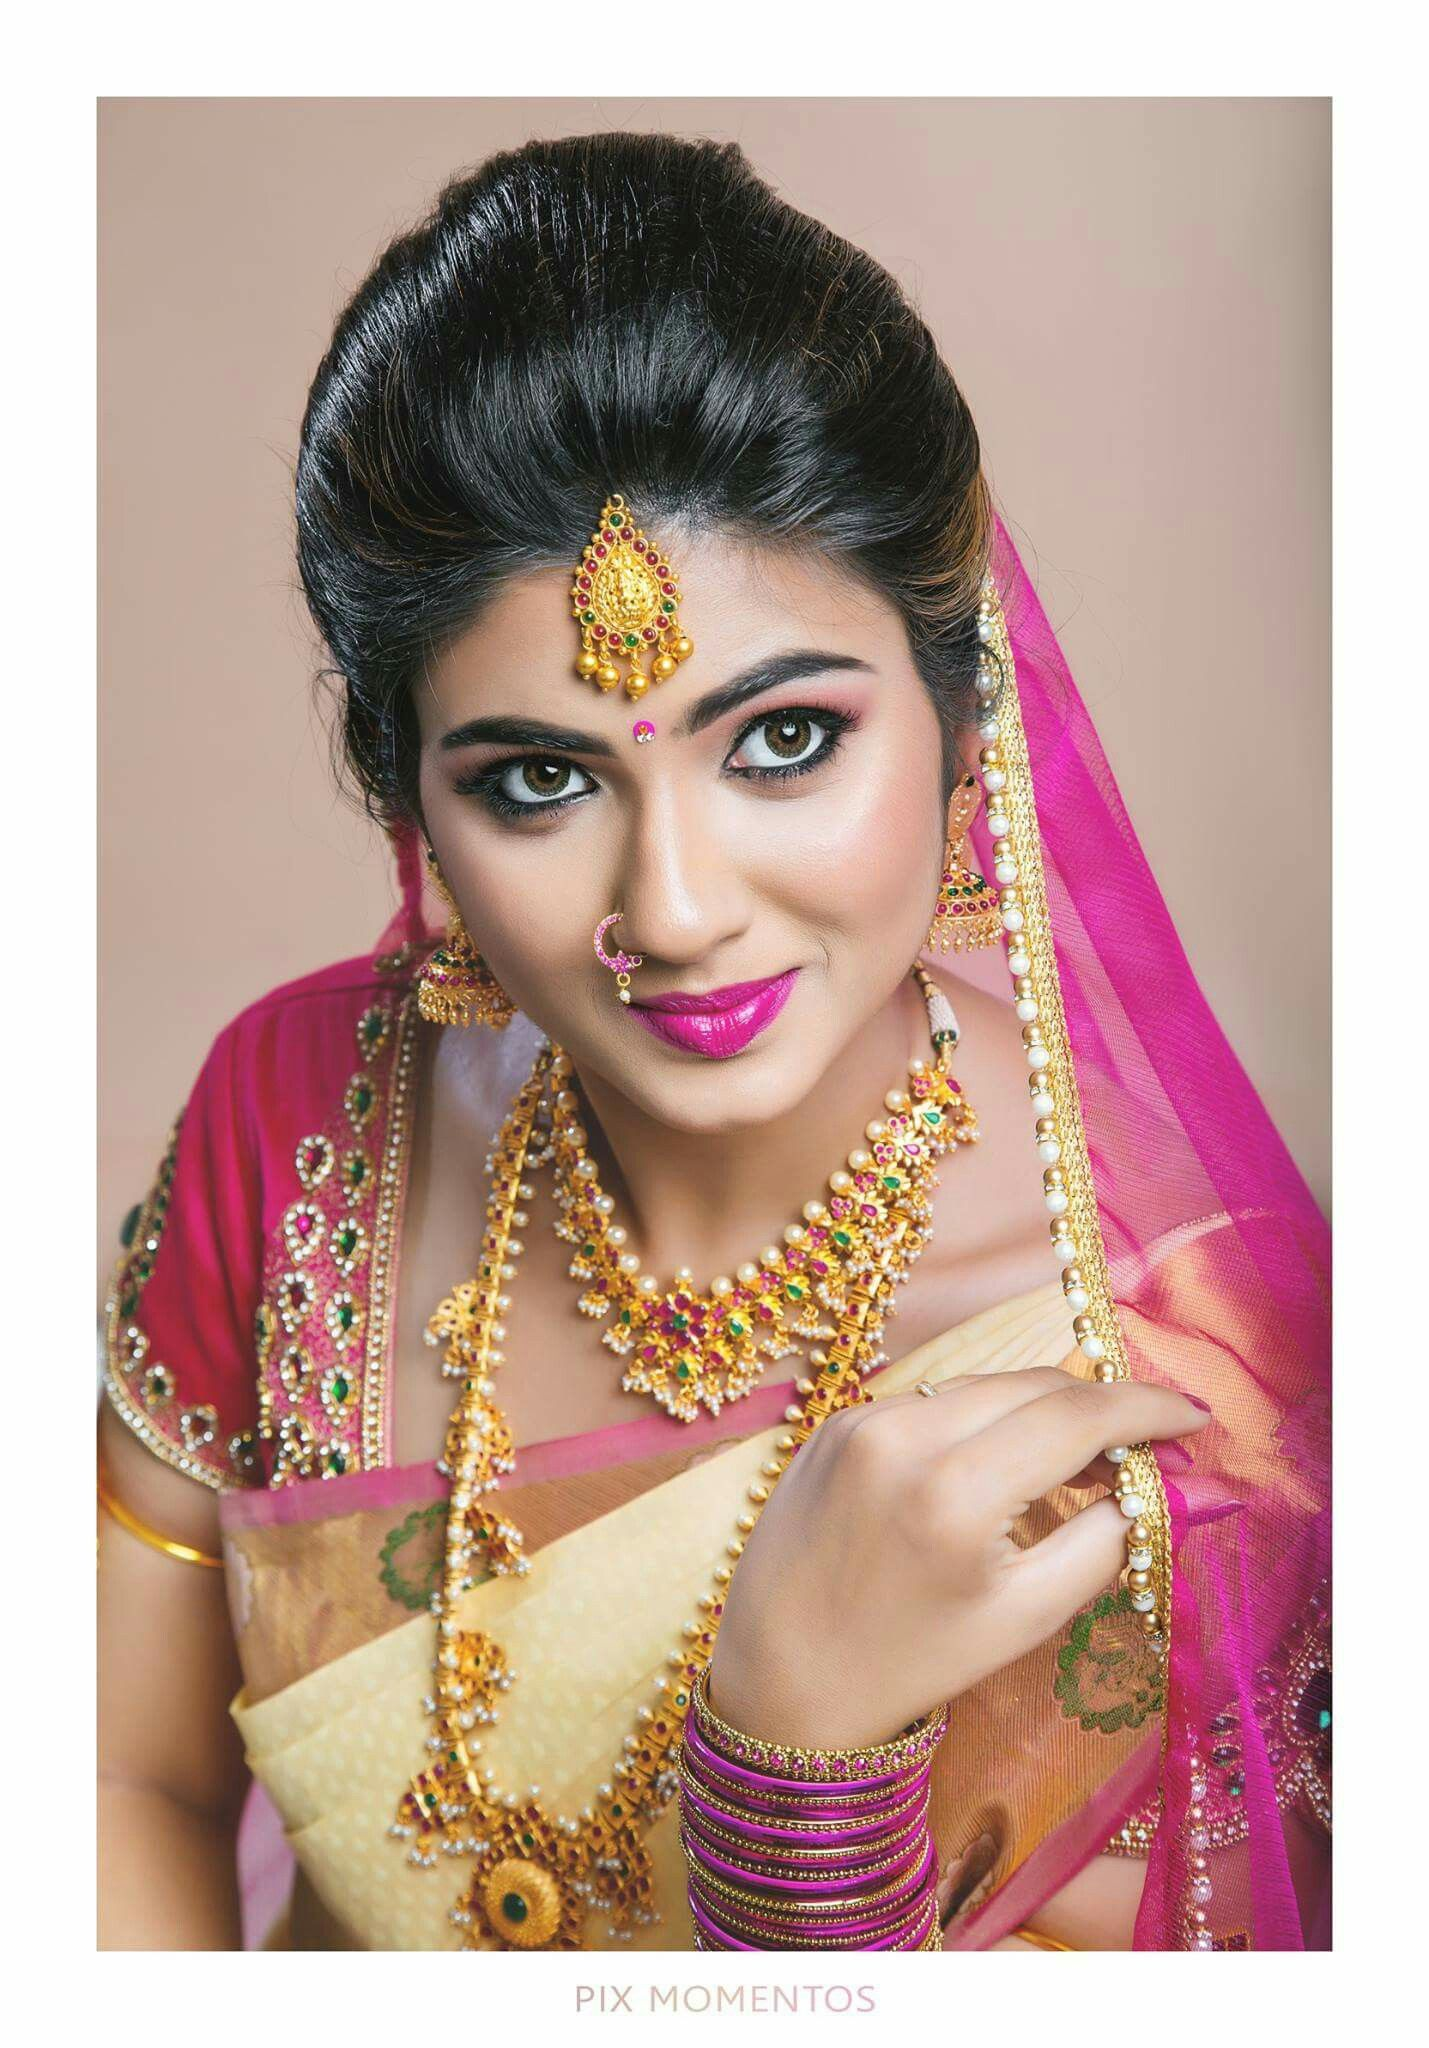 Bengali bridal gold jewellery - Bridal Jewellery Gold Jewellery Bridal Makeup Bridal Beauty Bengali Bride Beautiful Smile Nose Rings Golden Girls Indian Beauty